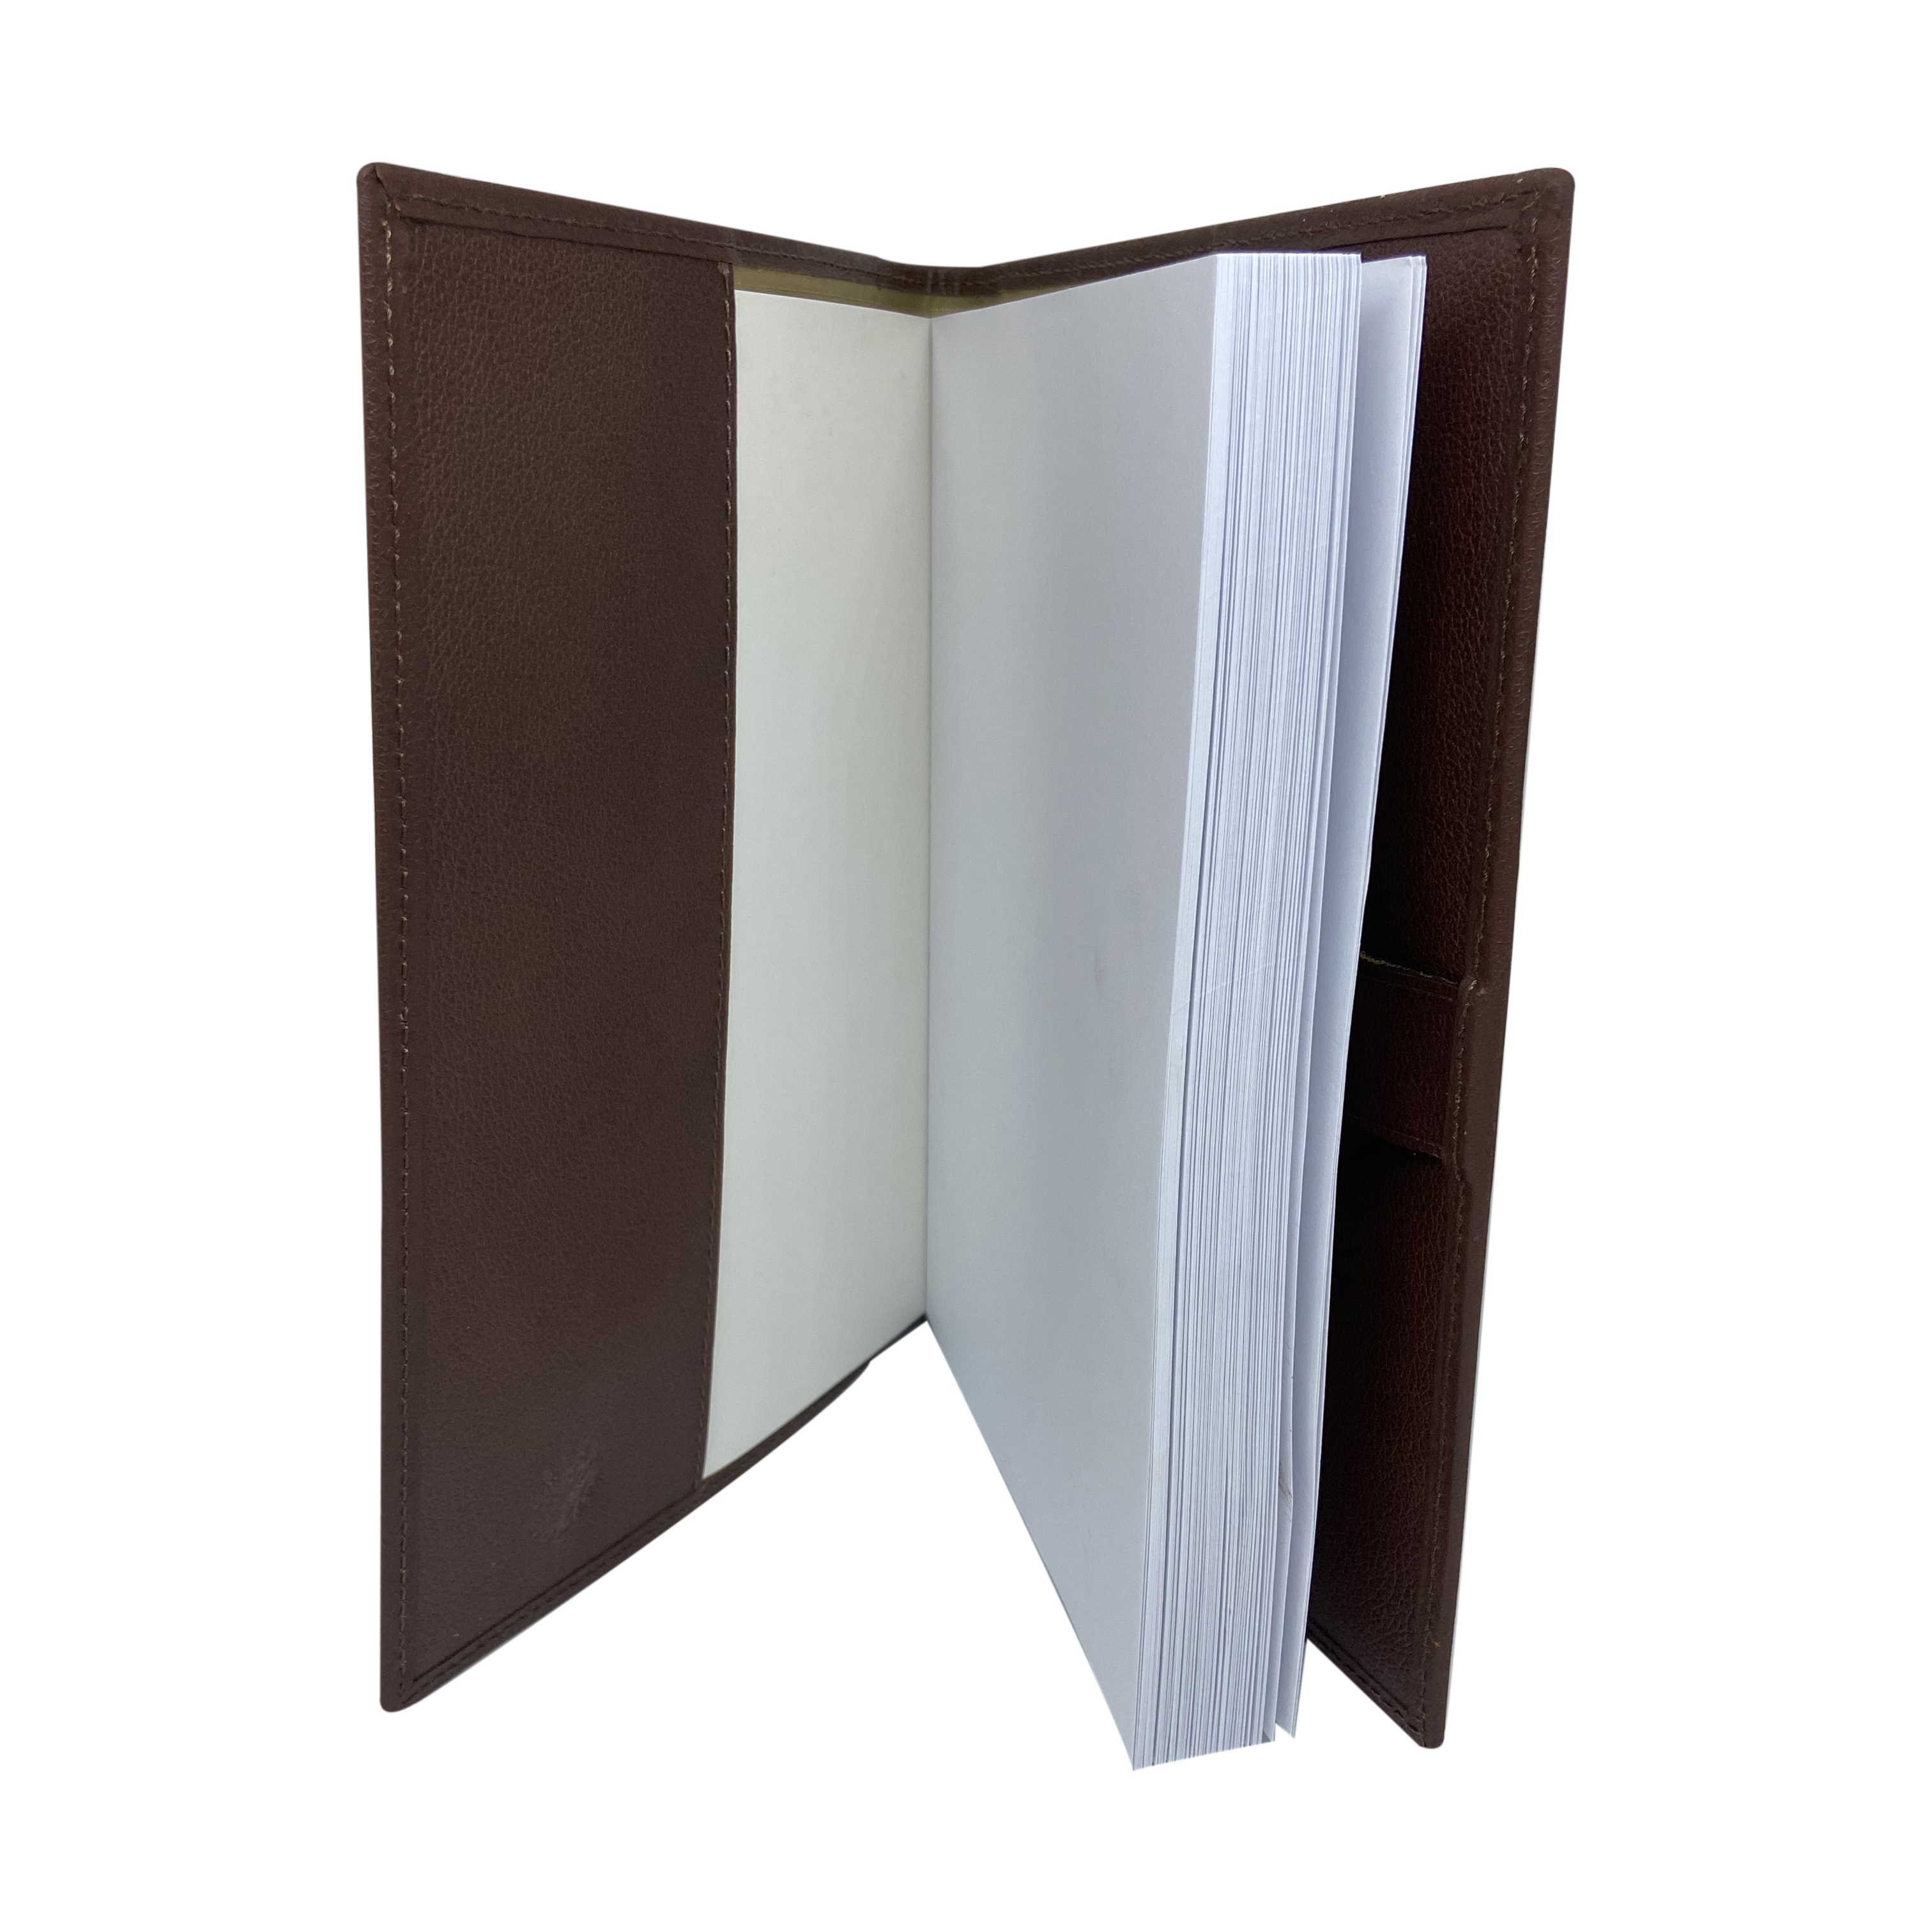 Notebook%20with%20penholder%20in%20leather%20cover 2